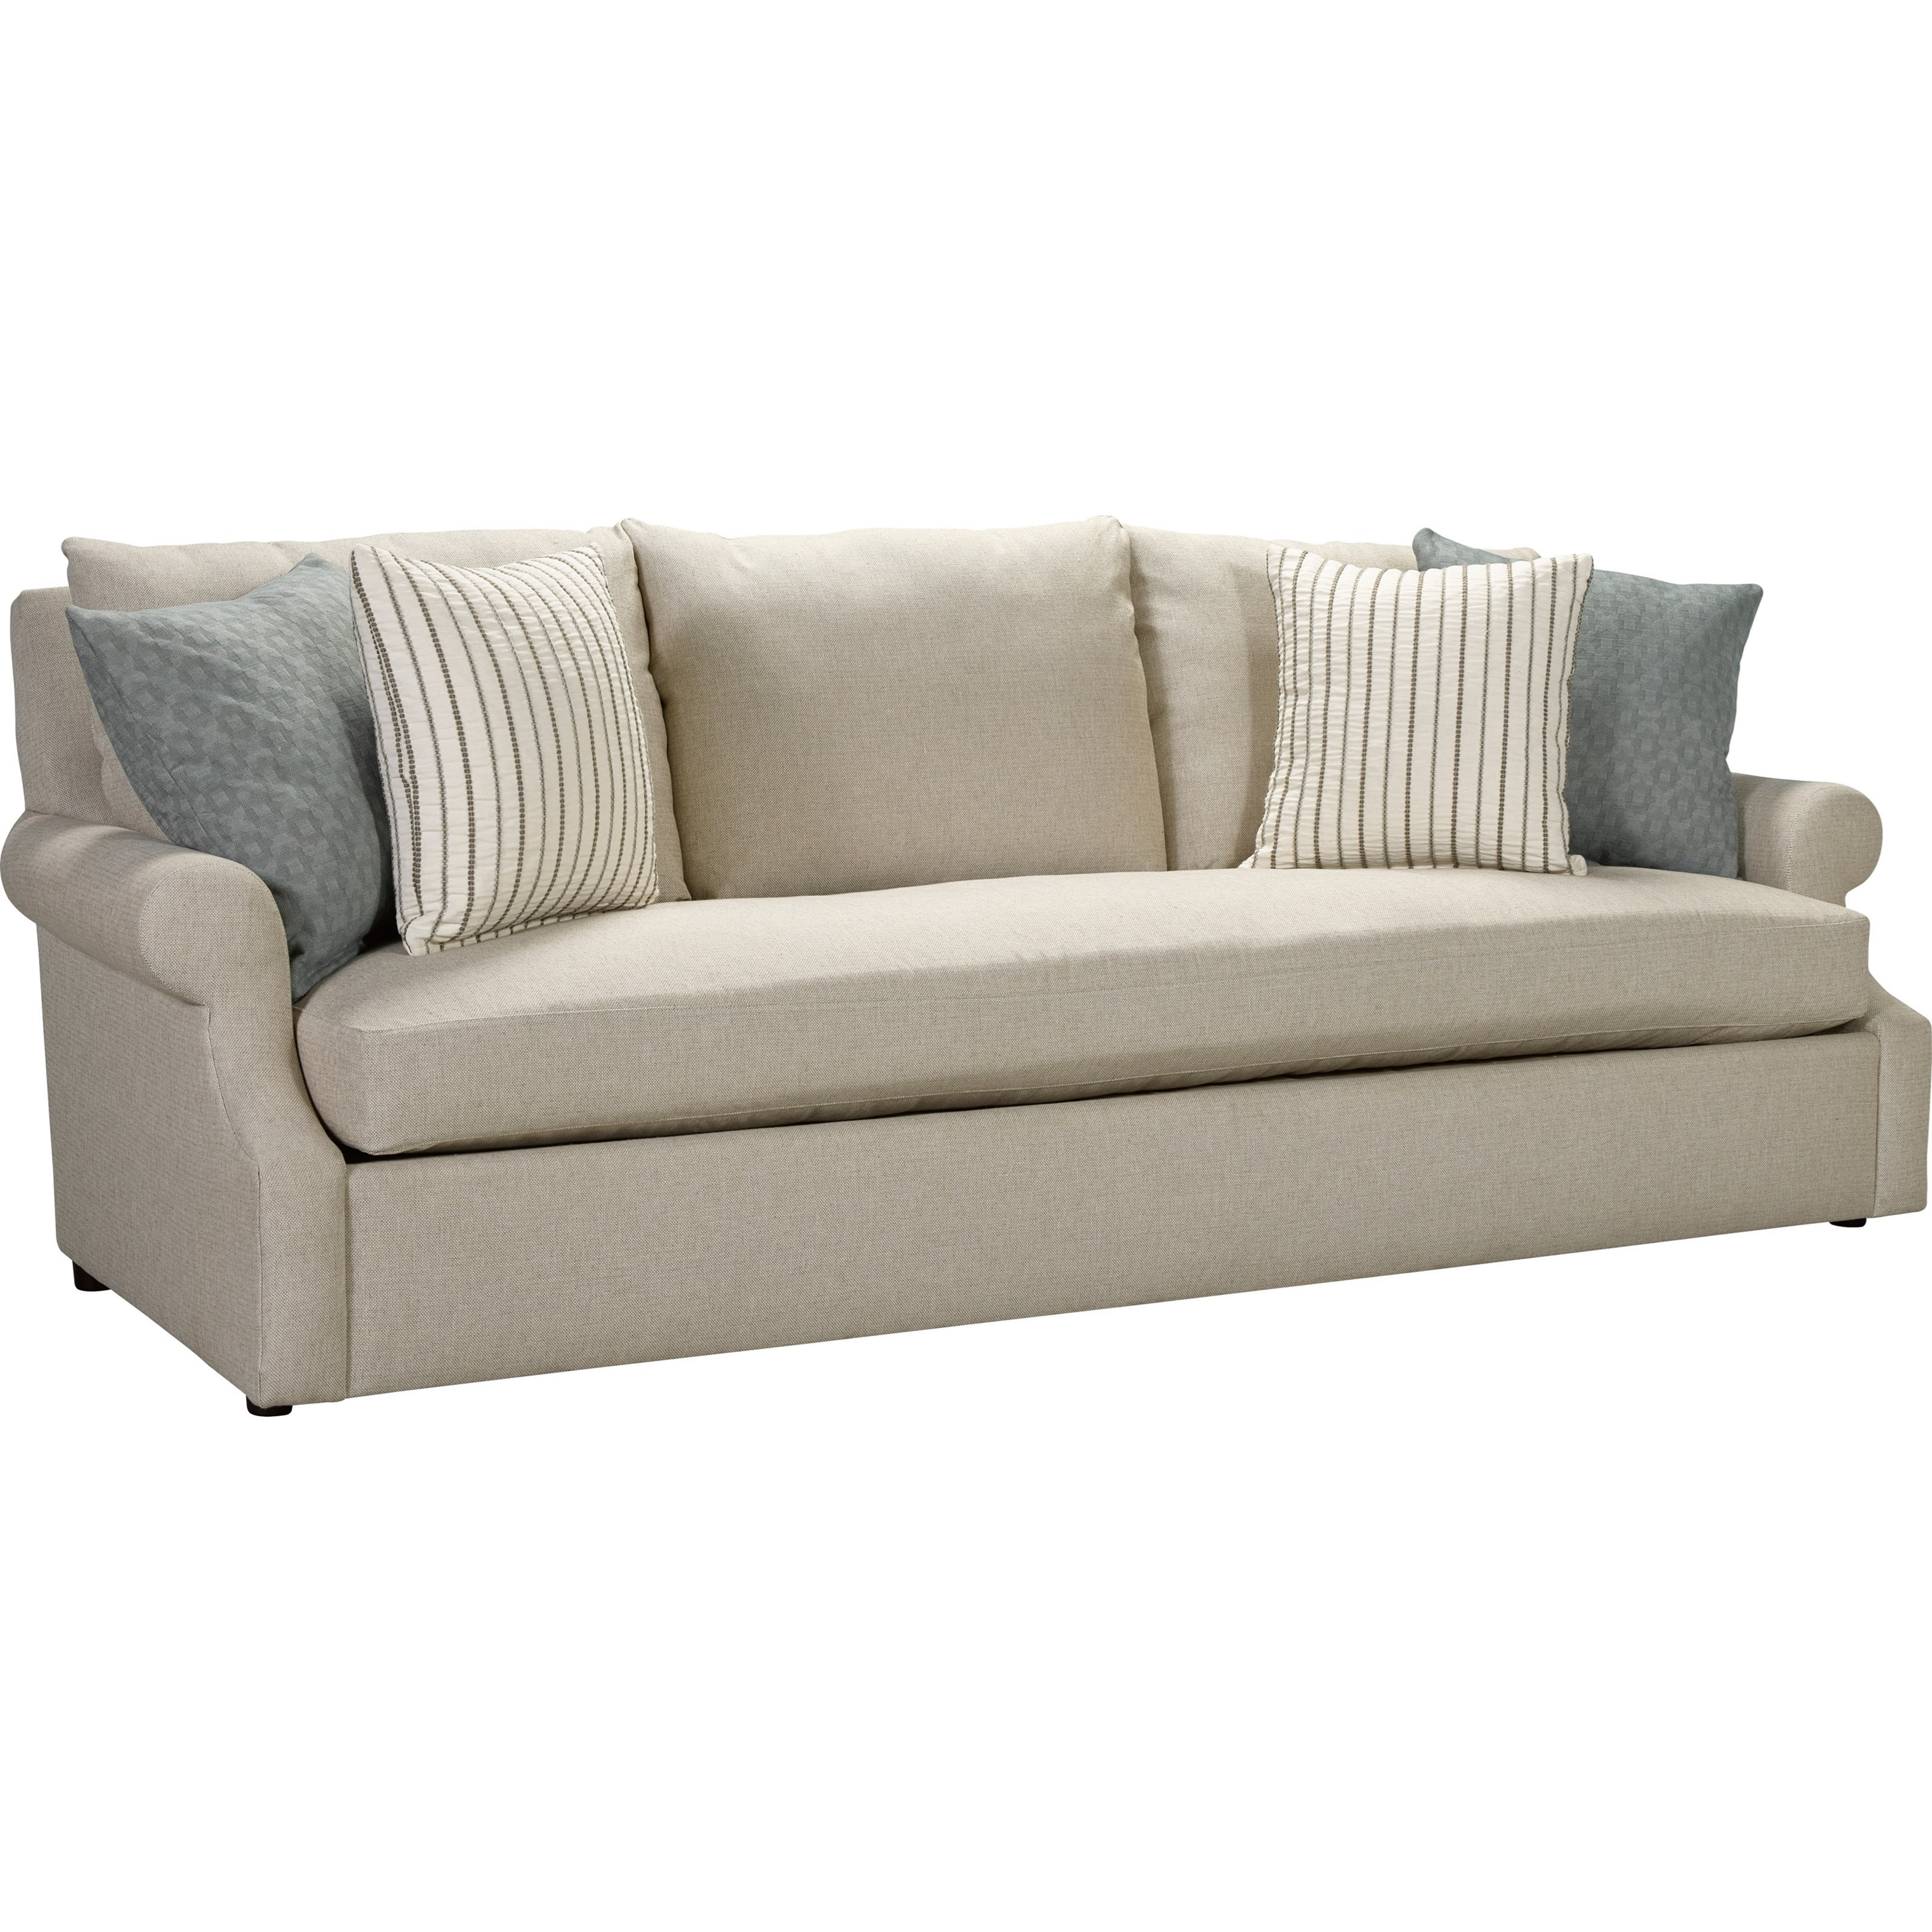 Broyhill furniture willa casual sofa with single seat for Casual couch